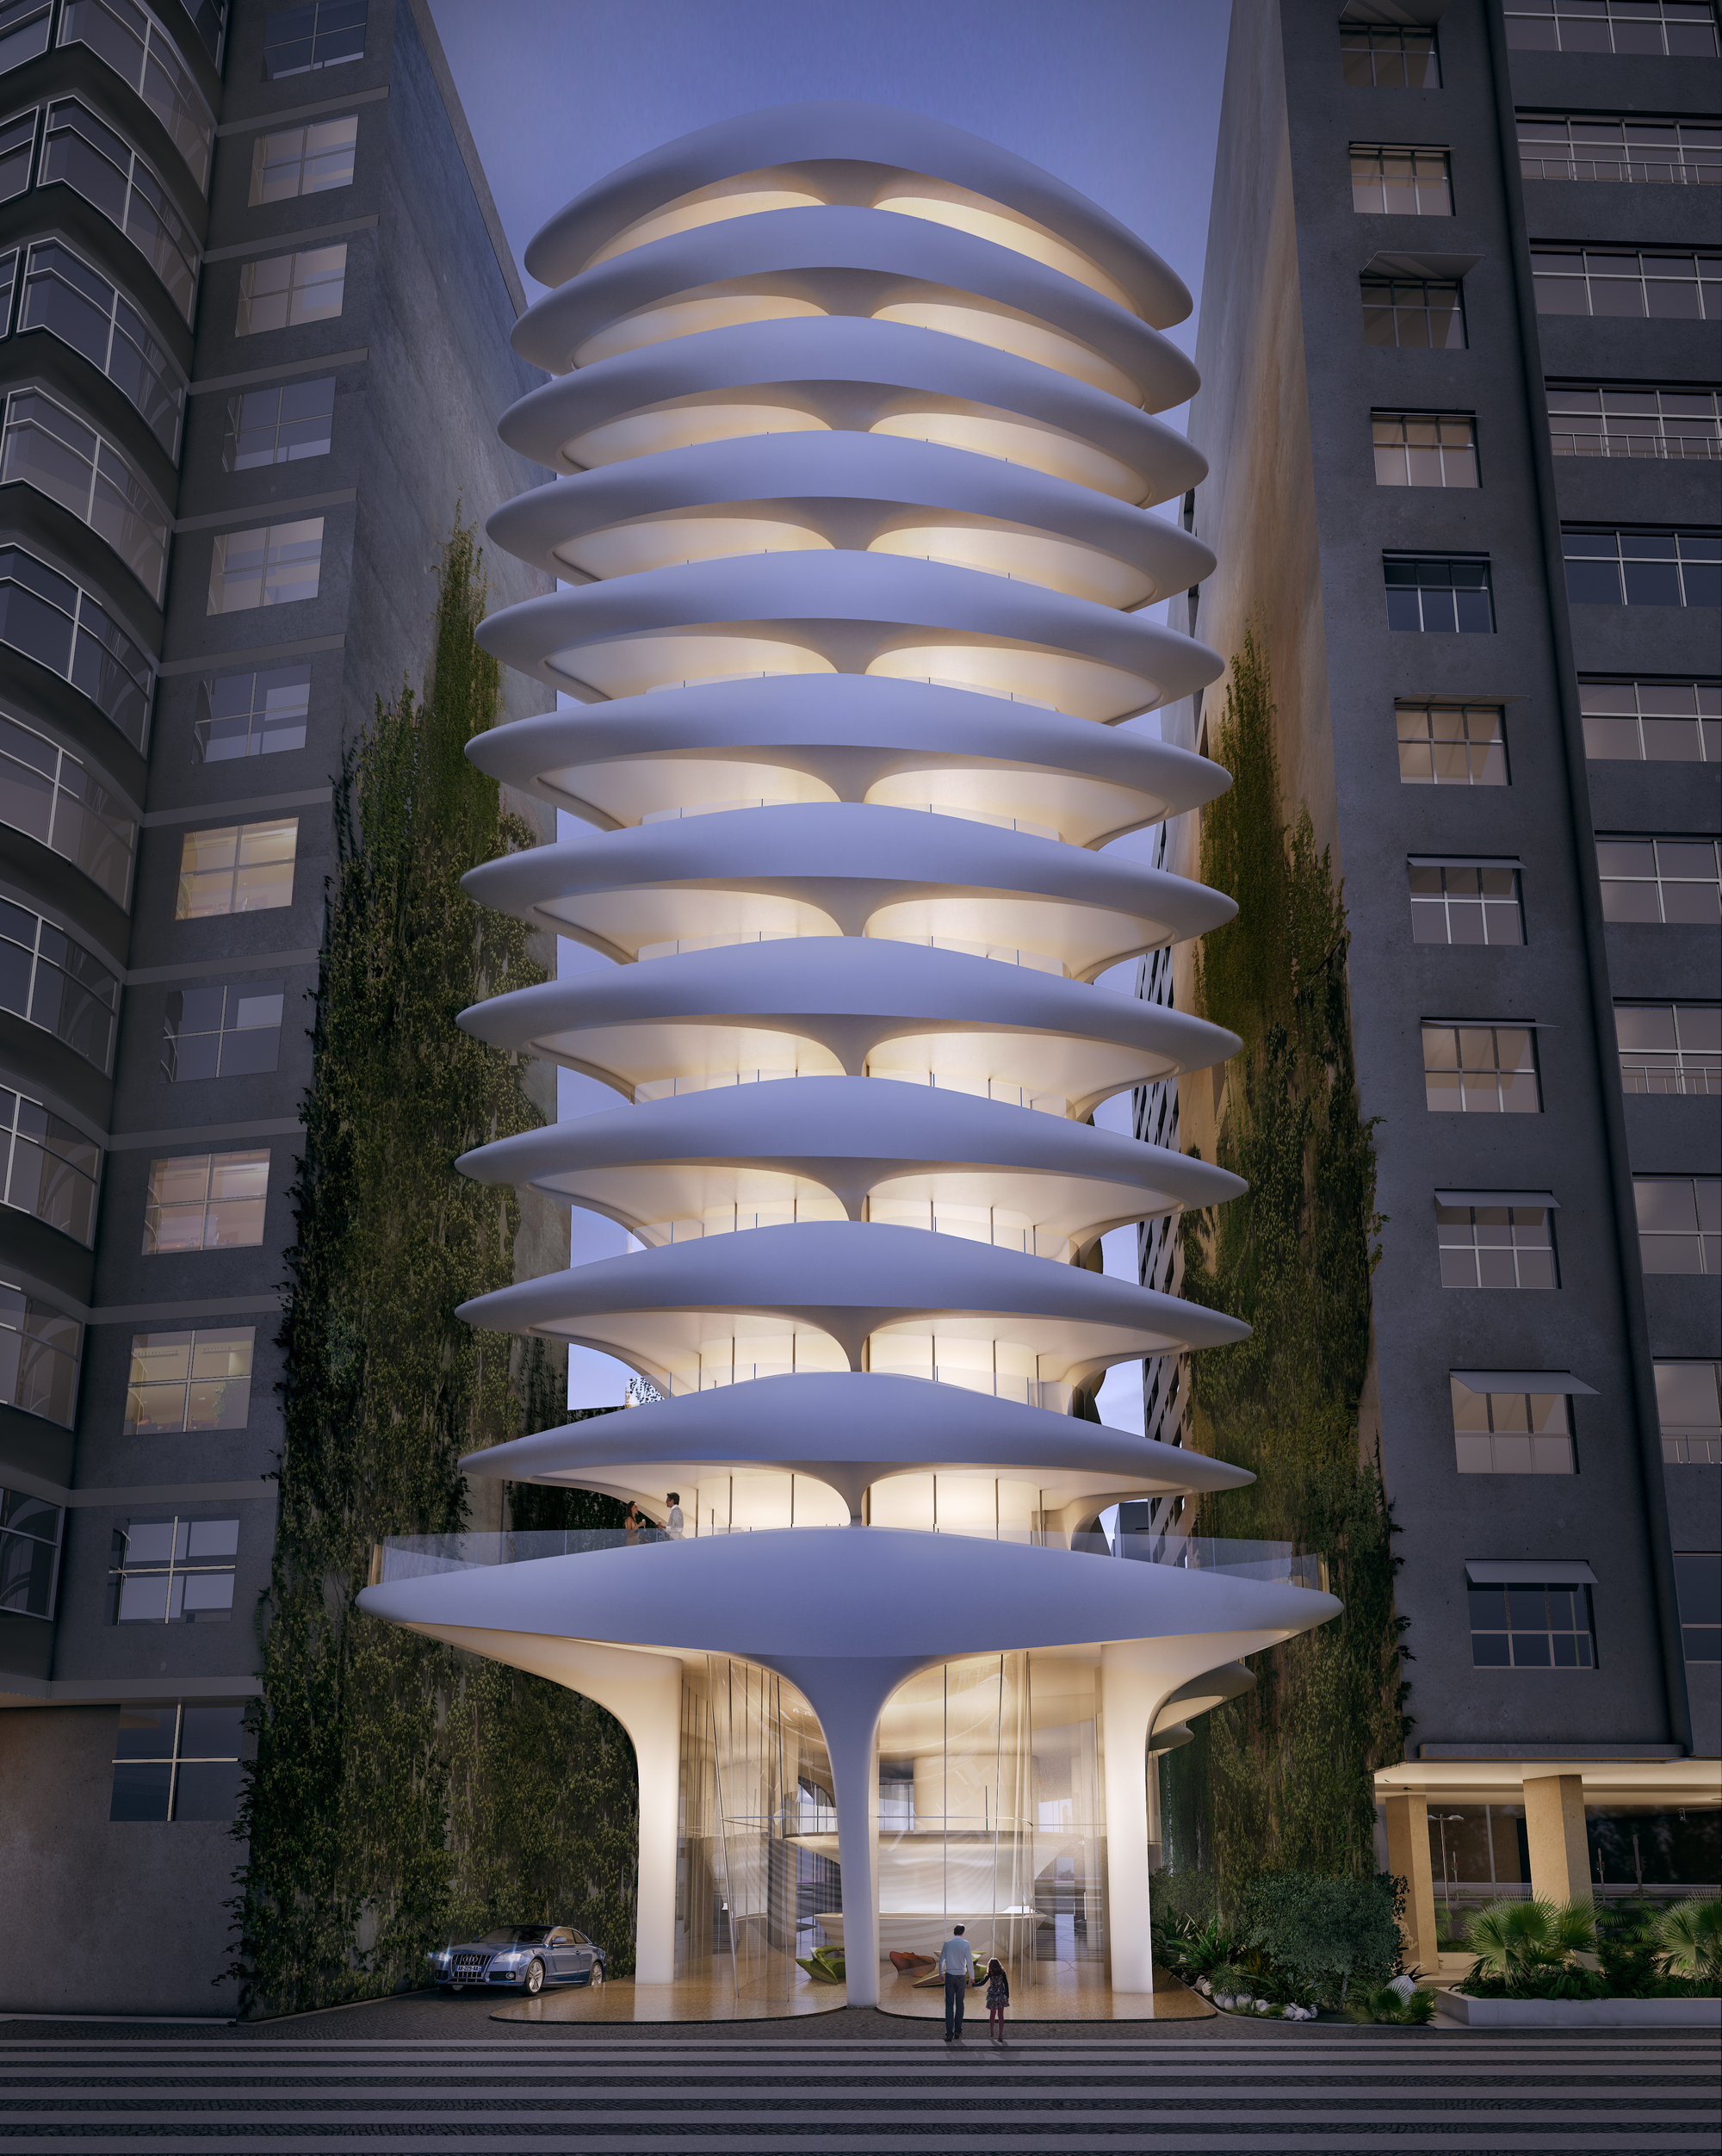 Zaha hadid prepares to break ground on first project in Rio design hotel